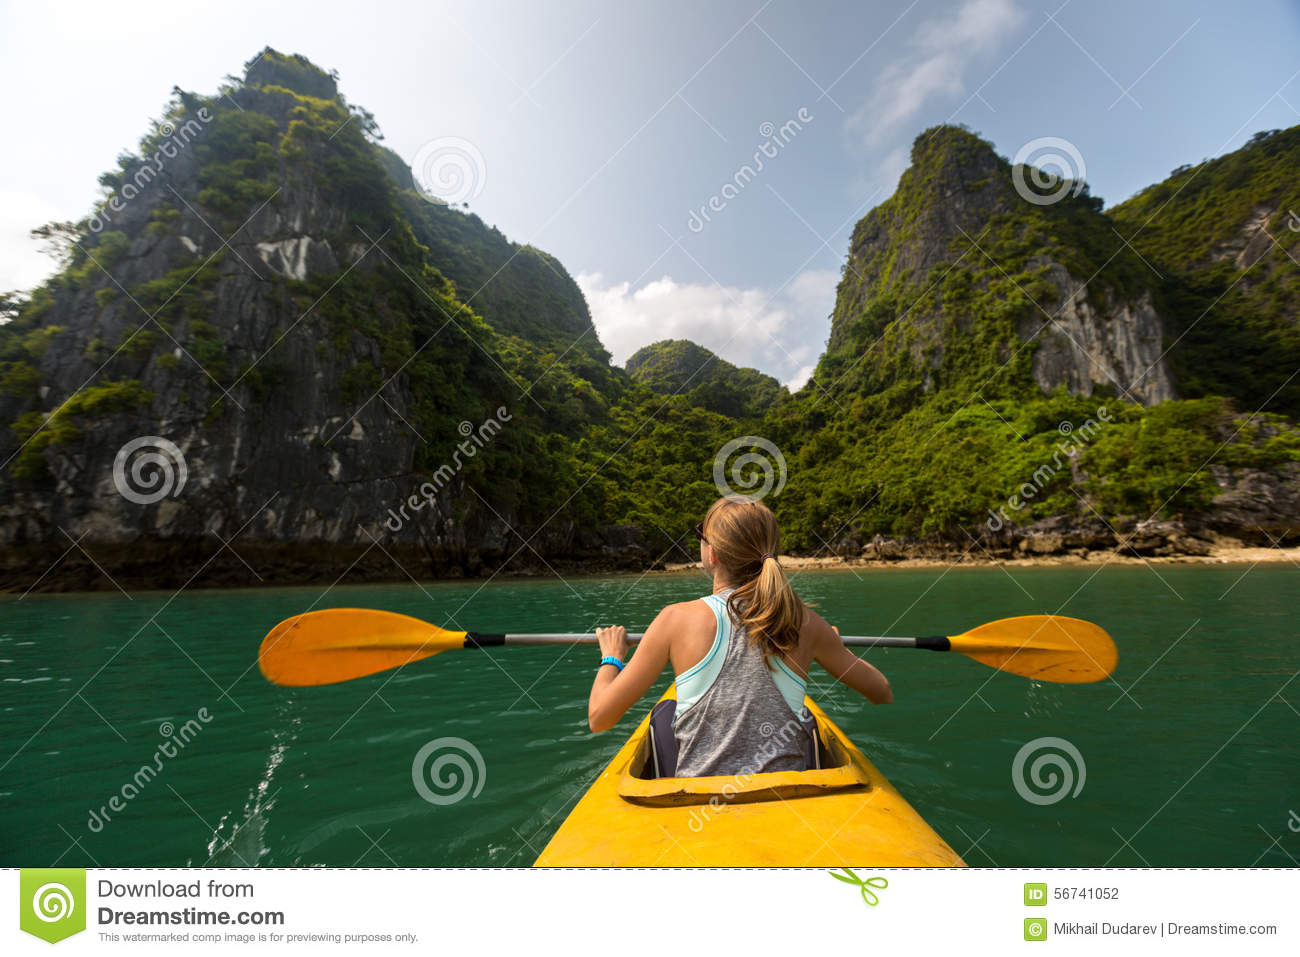 Lady with the kayak